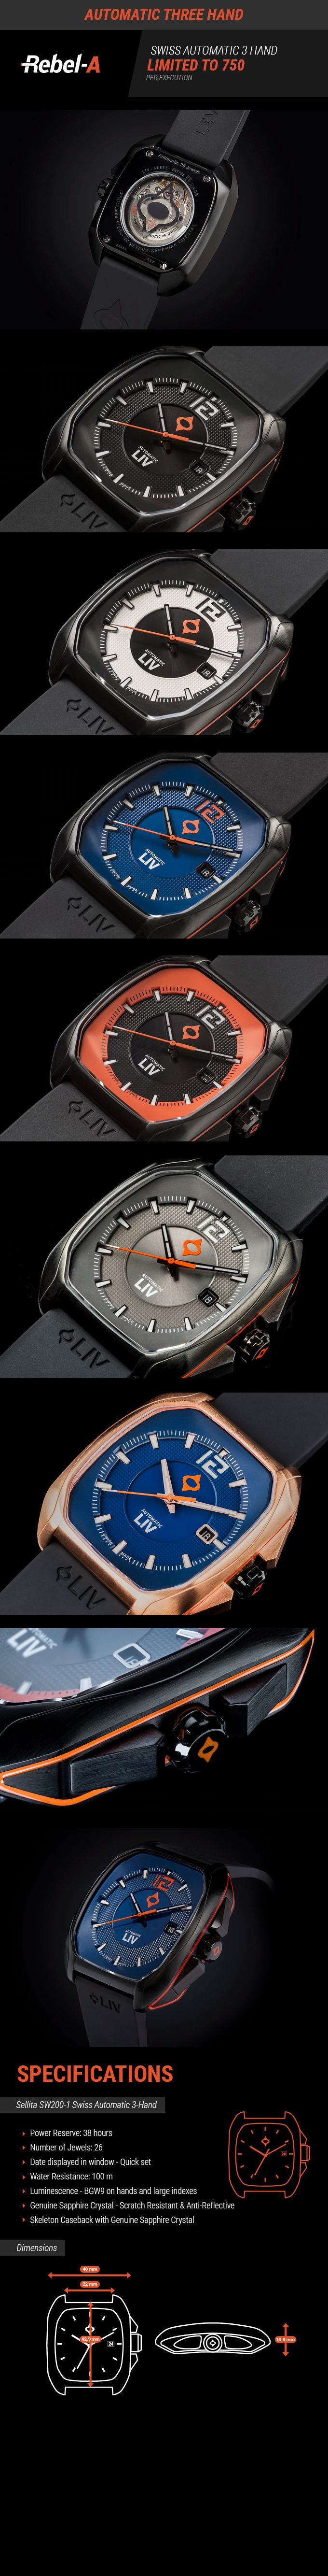 Rebel, a SWISS MADE Automatic Chronograph timepiece, LIMITED EDITION. Assembled by HAND from the finest materials.